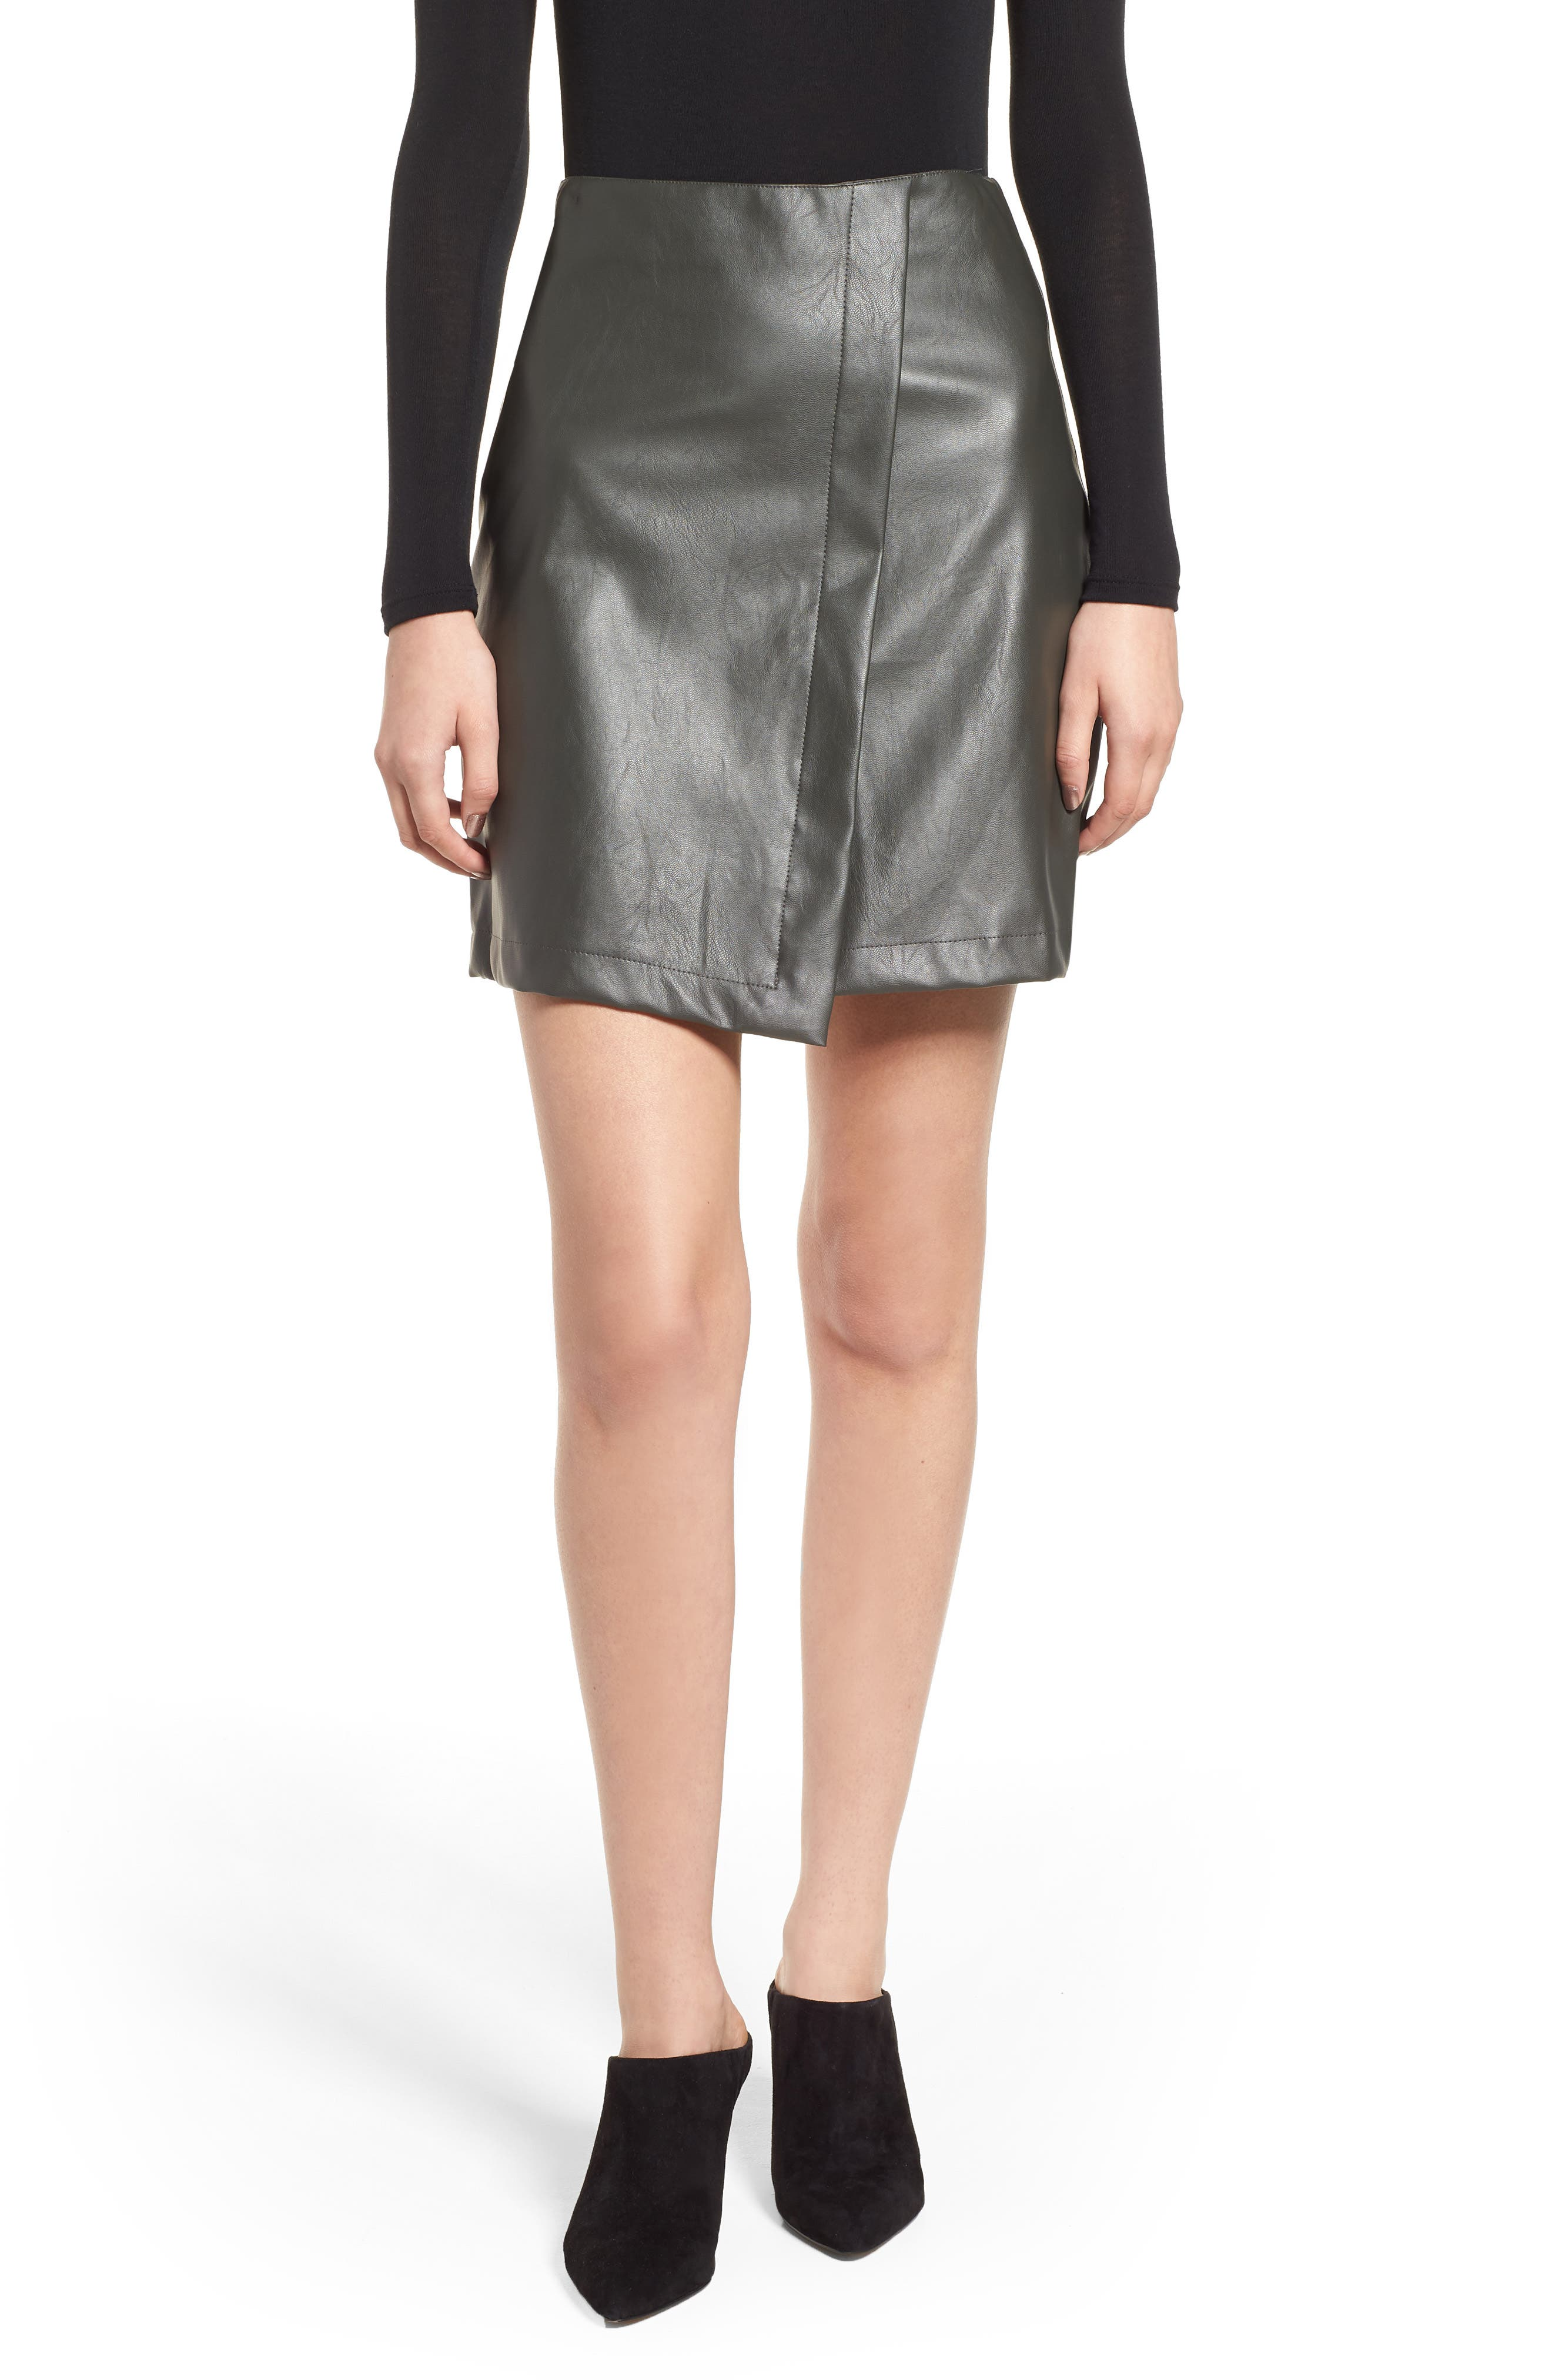 Bishop + Young A-Line Faux Leather Miniskirt,                         Main,                         color, Olive